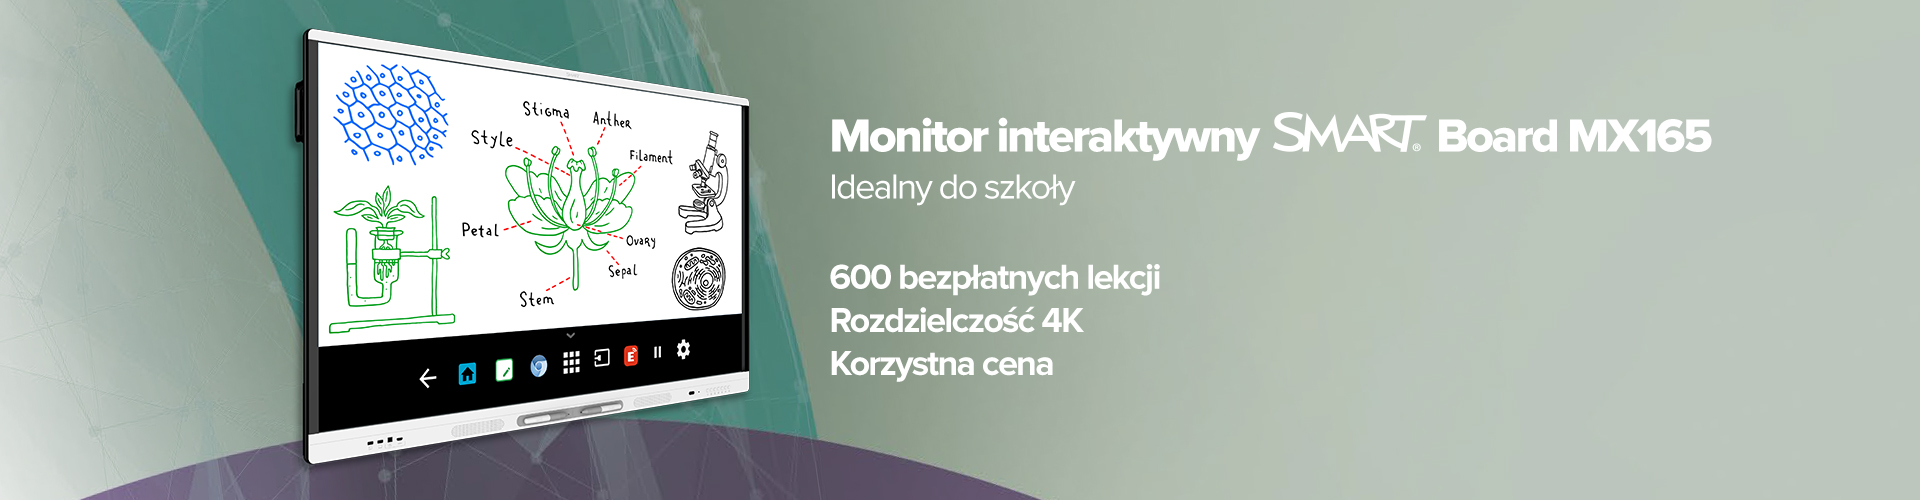 https://av-systemy.pl/310,monitor-interaktywny-smart-mx165.html